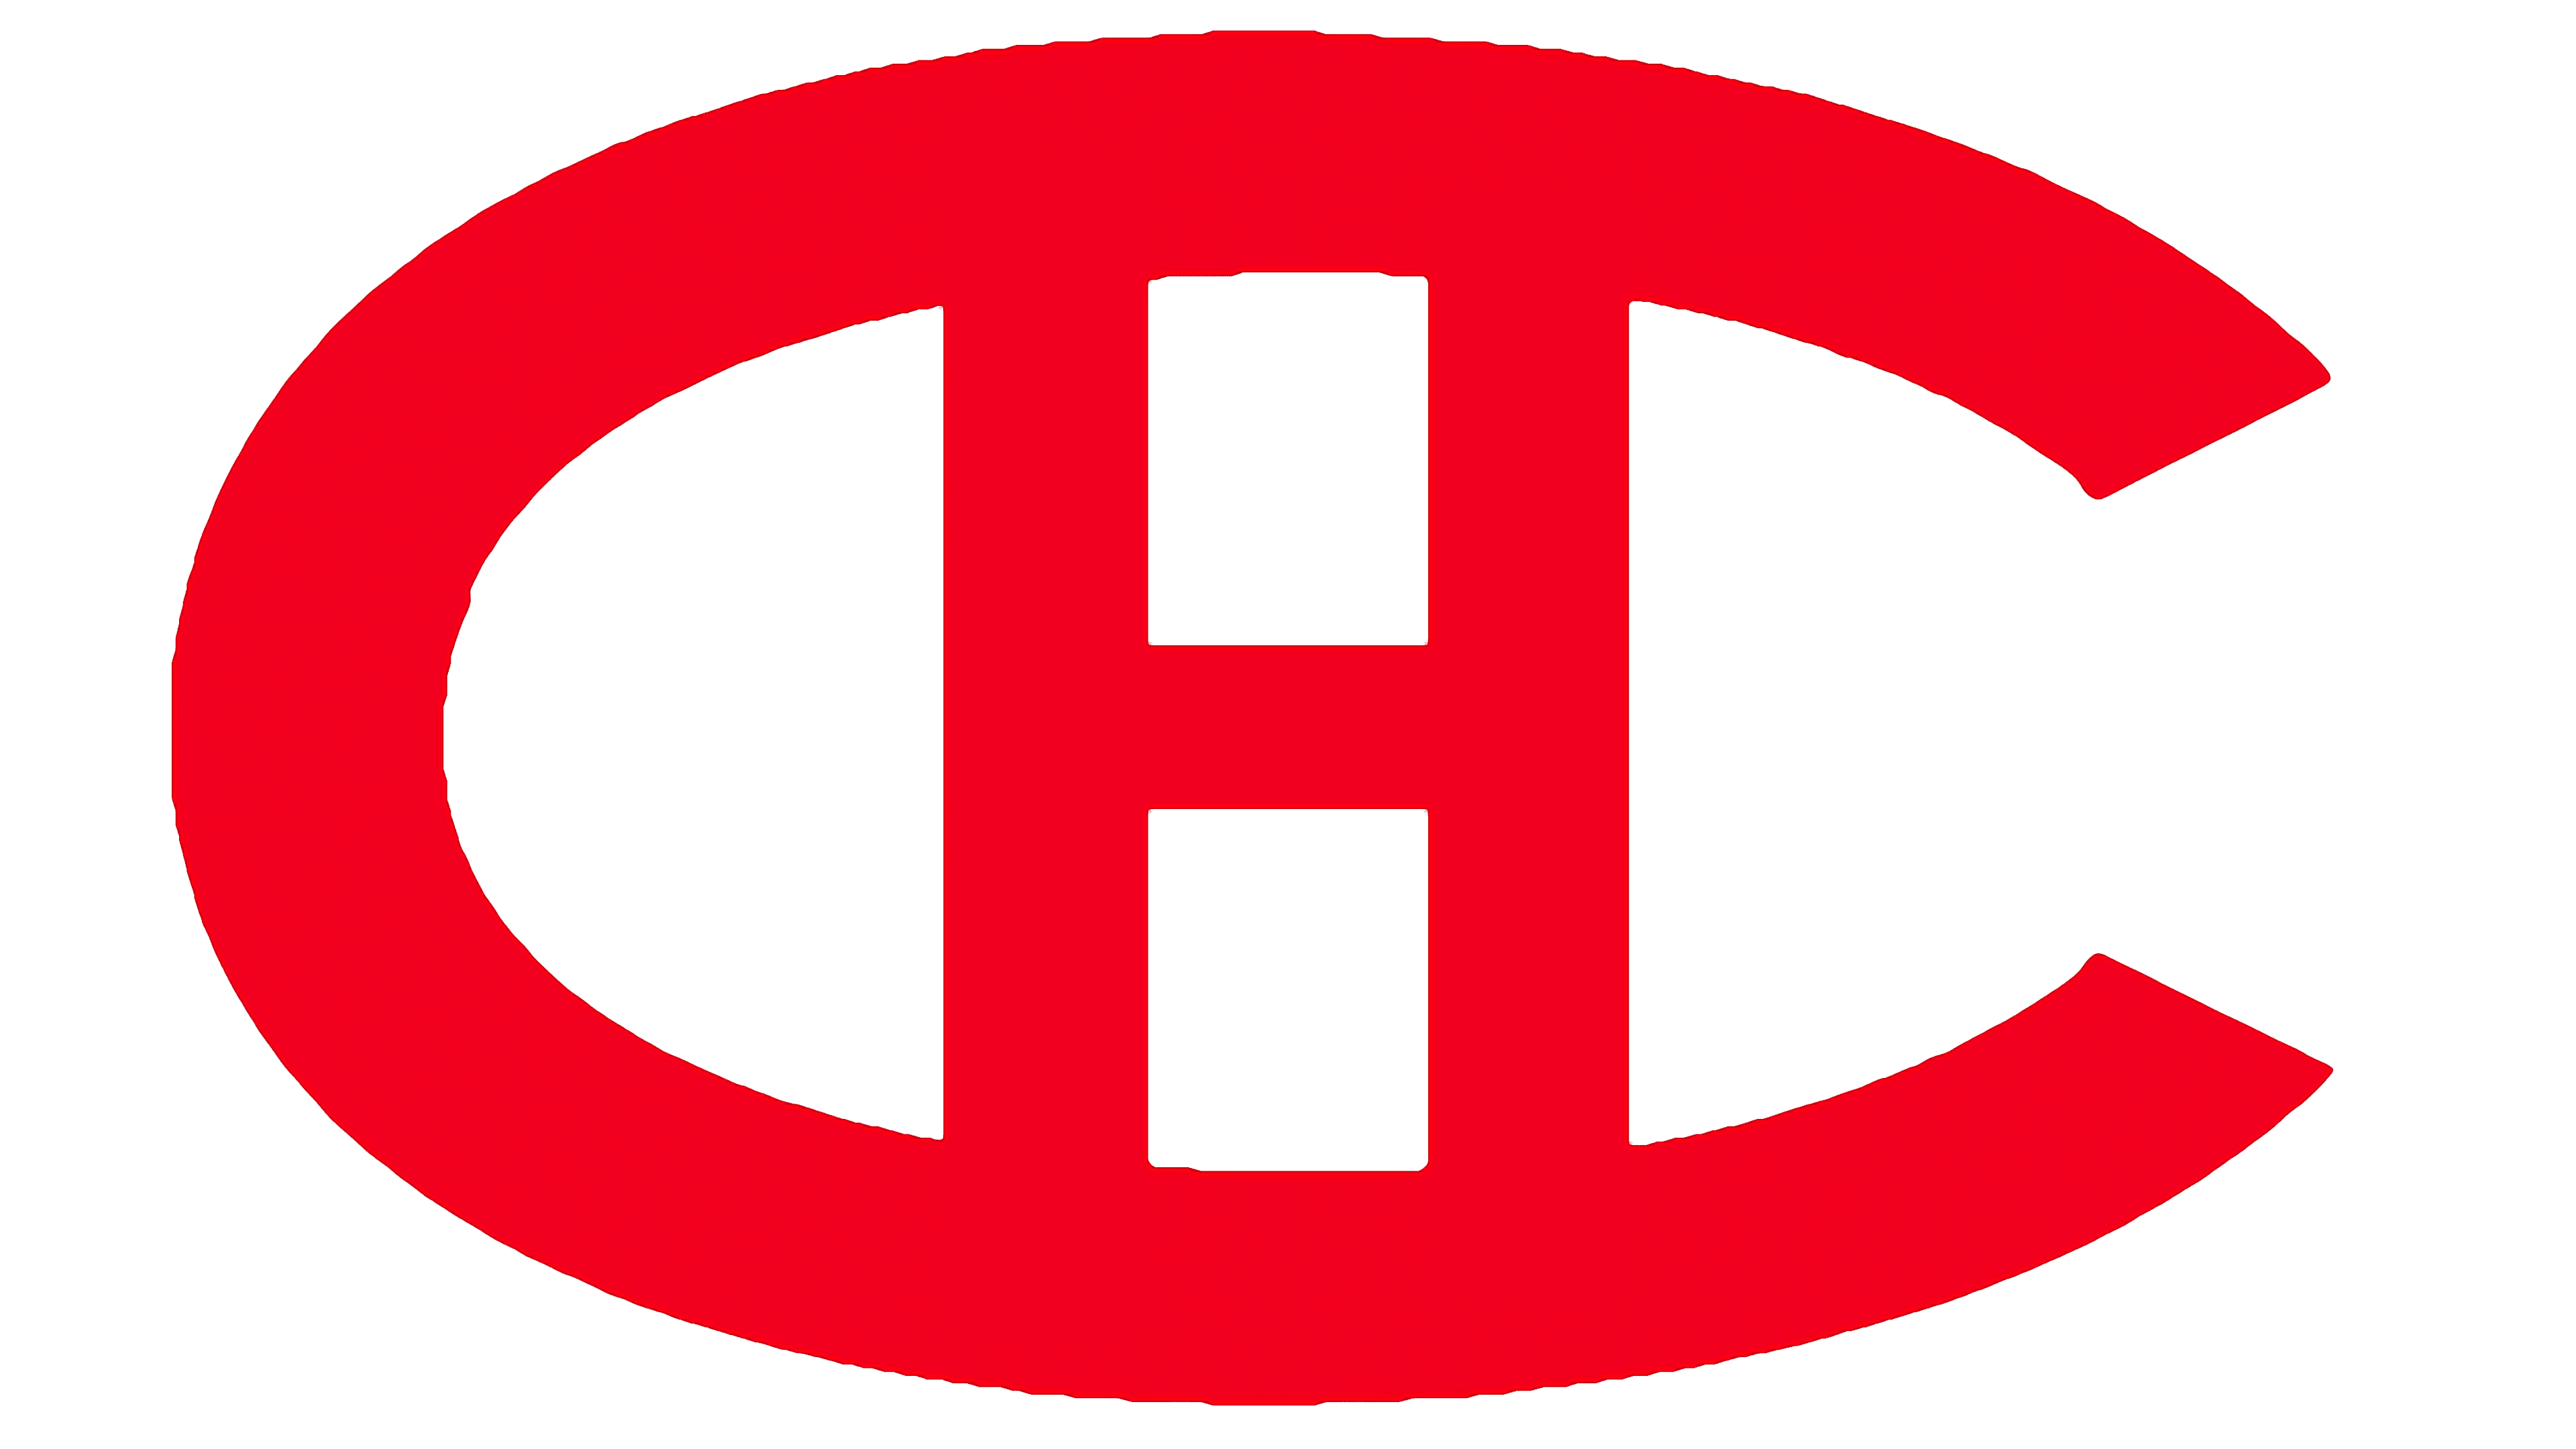 Montreal Canadiens Logo The Most Famous Brands And Company Logos In The World